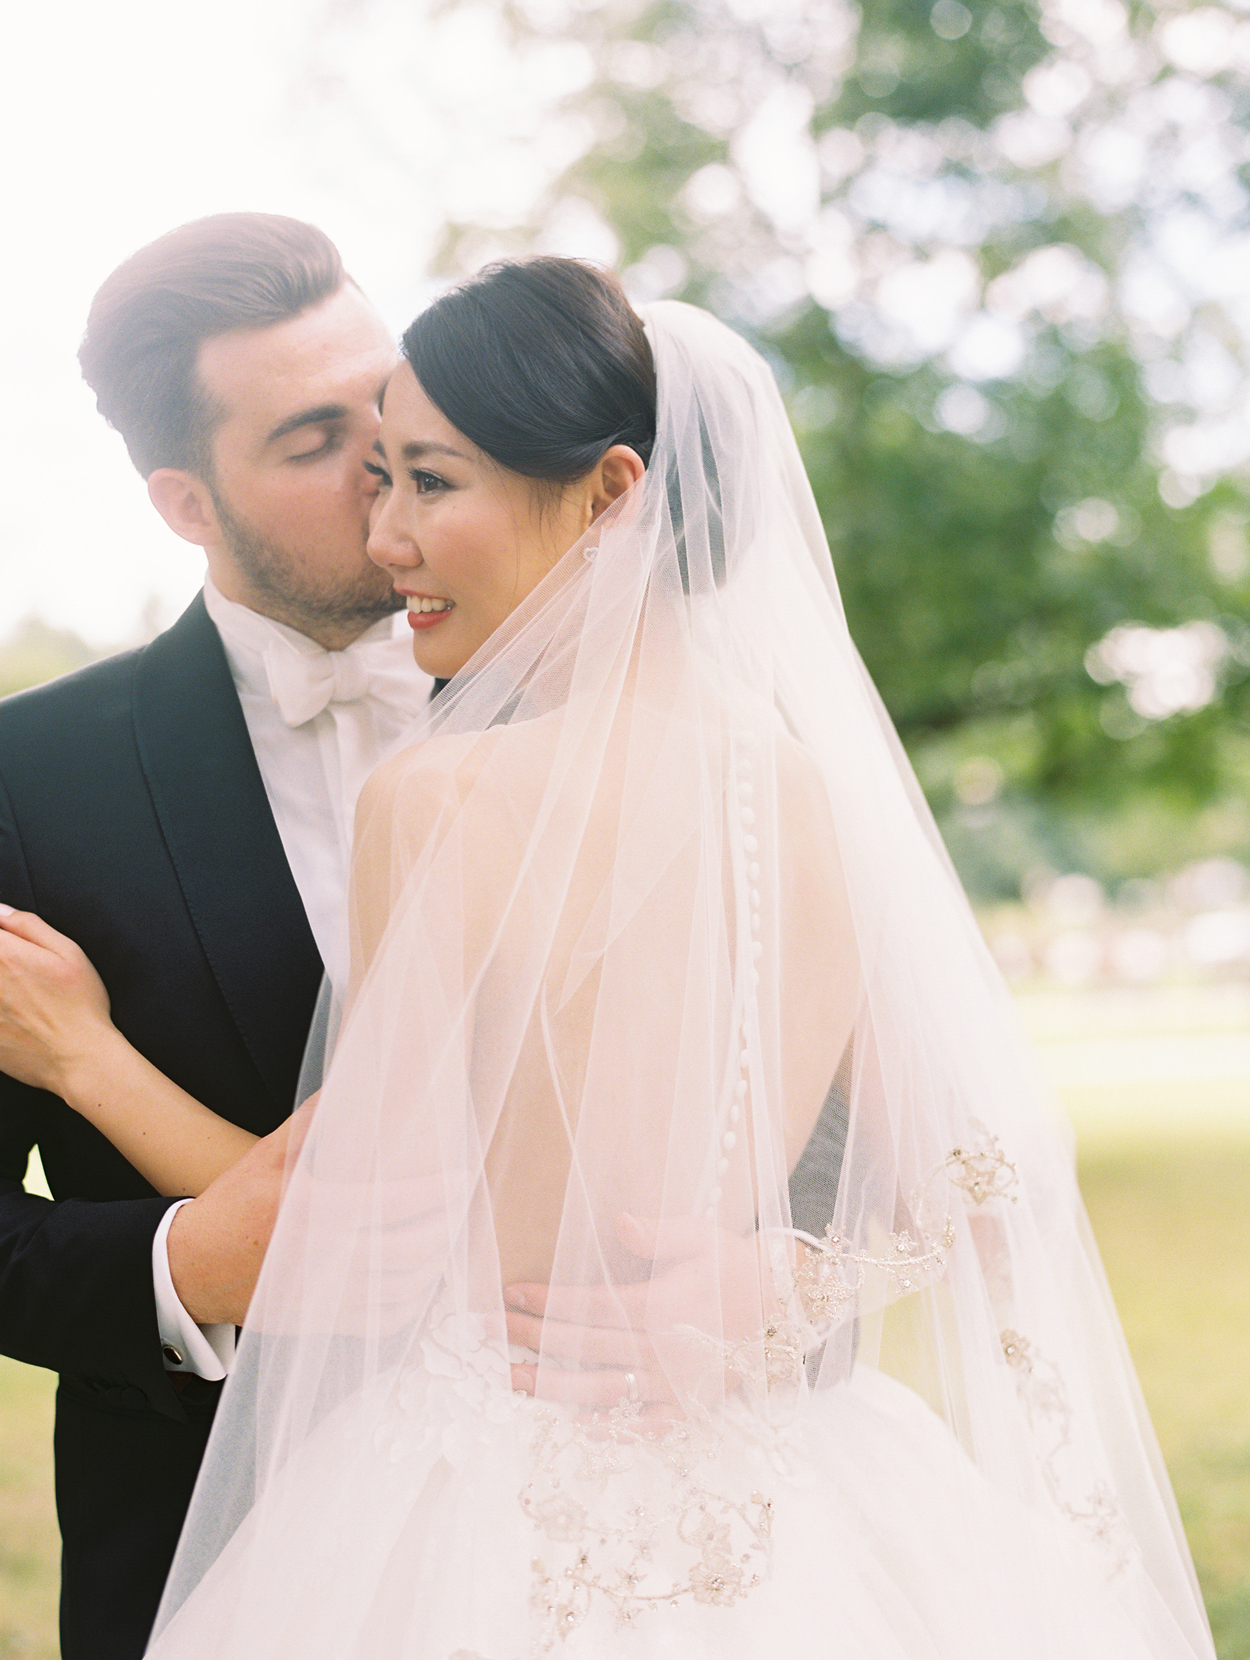 groom kisses bride's cheek while couple embraces